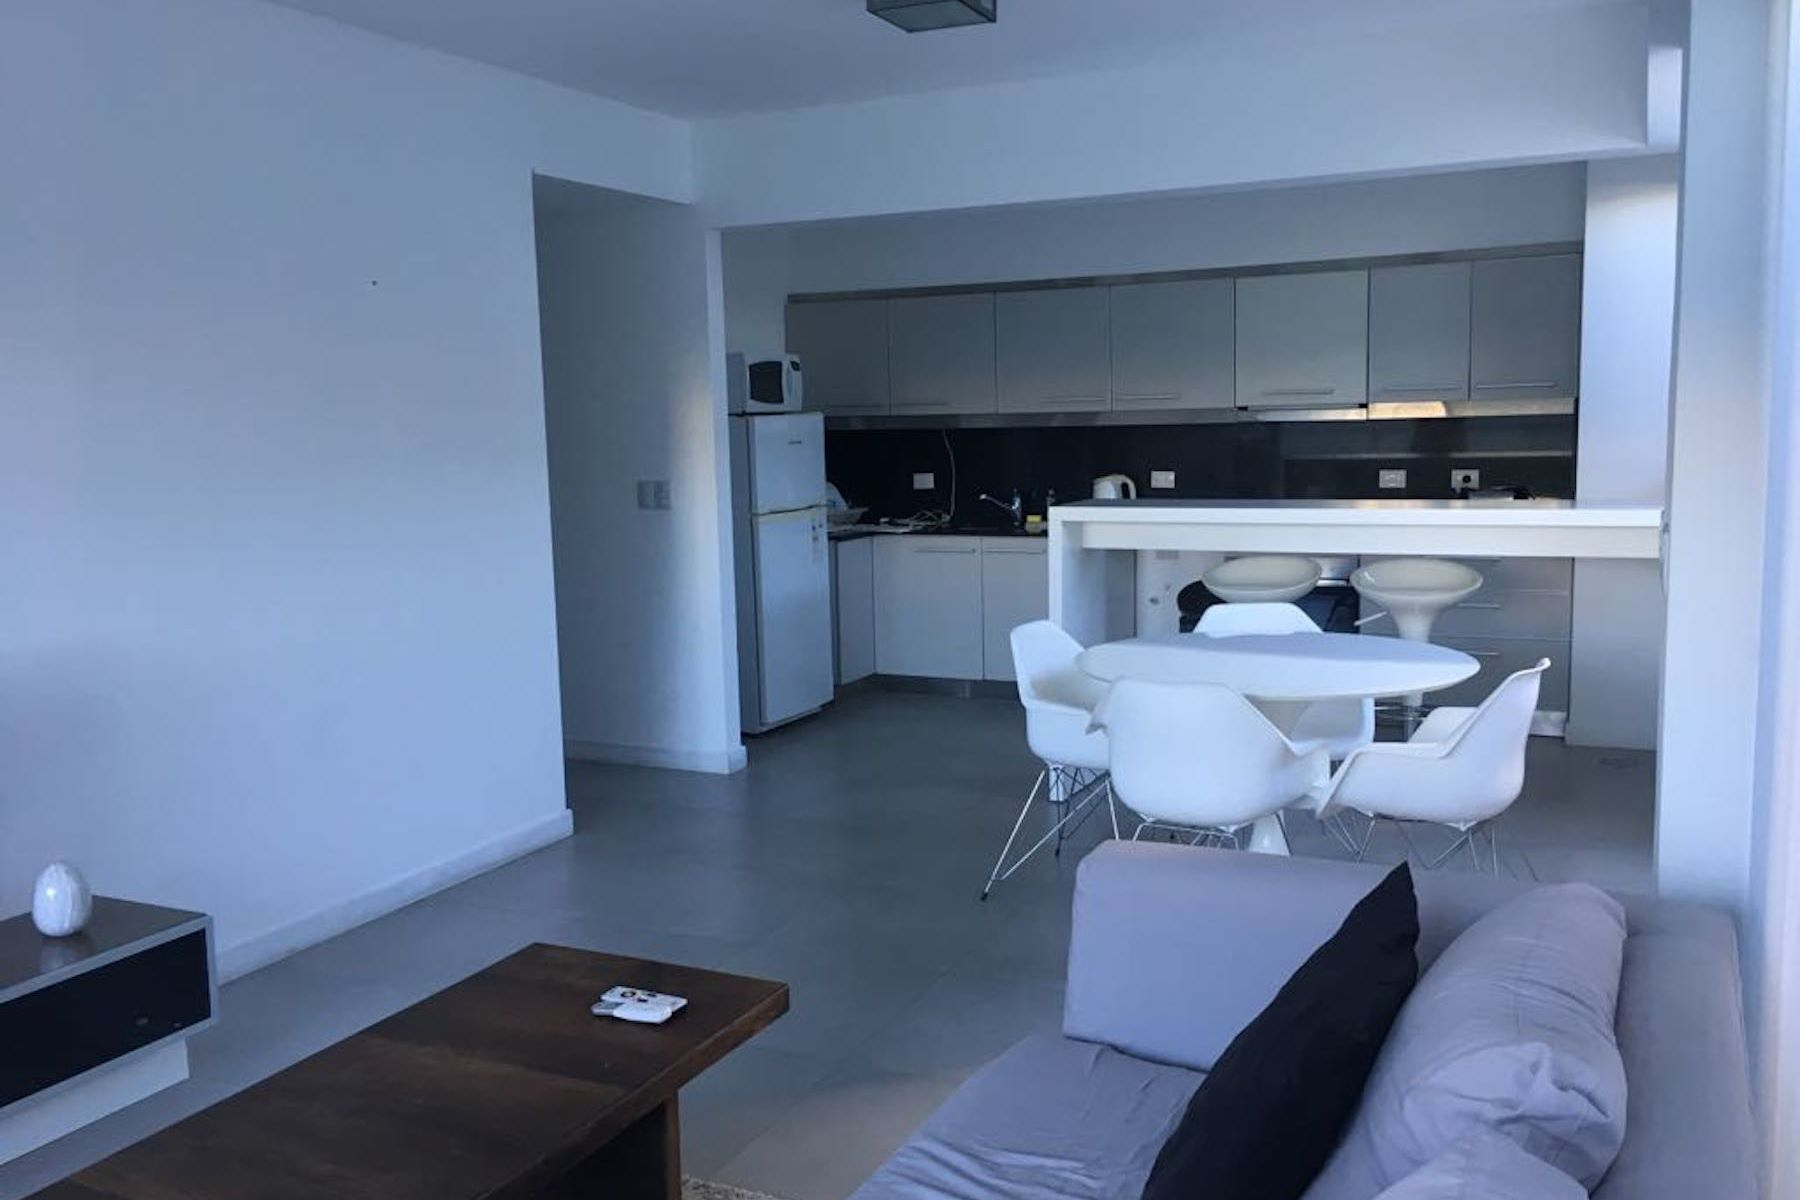 شقة للـ Sale في Unique two bedrooms apartment for sale Lola Mora 457, Capital Federal, Buenos Aires, 1107 Argentina